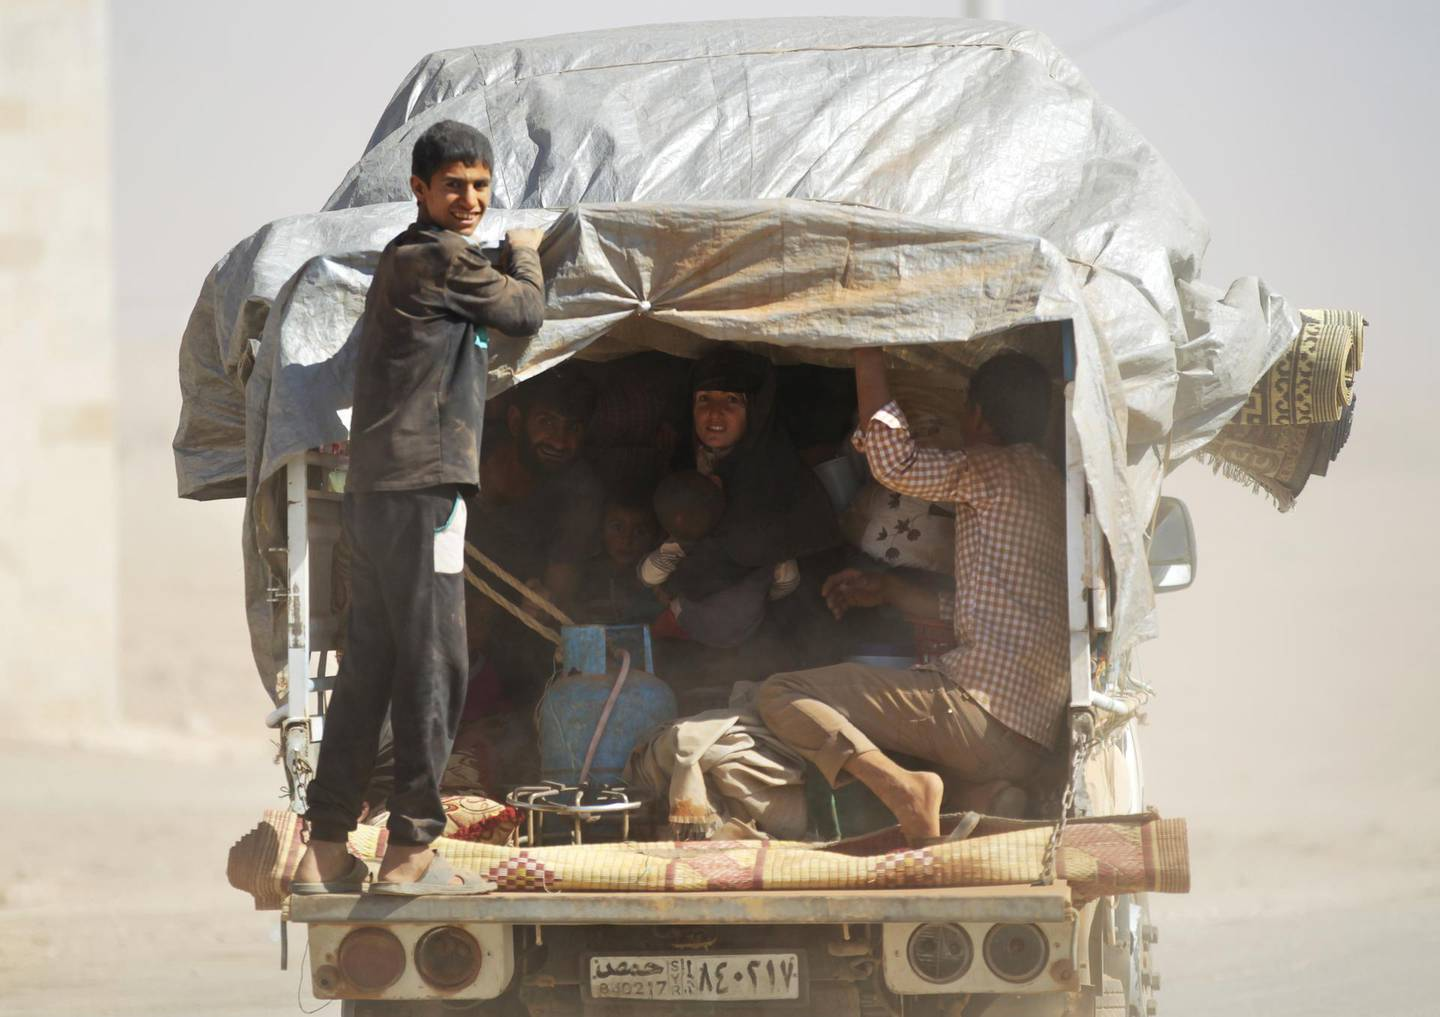 People, who fled from Islamic State-controlled areas, ride a pick-up truck upon their arrival in Turkman Bareh village, after rebel fighters advanced in the area, in northern Aleppo Governorate, Syria, October 7, 2016. REUTERS/Khalil Ashawi